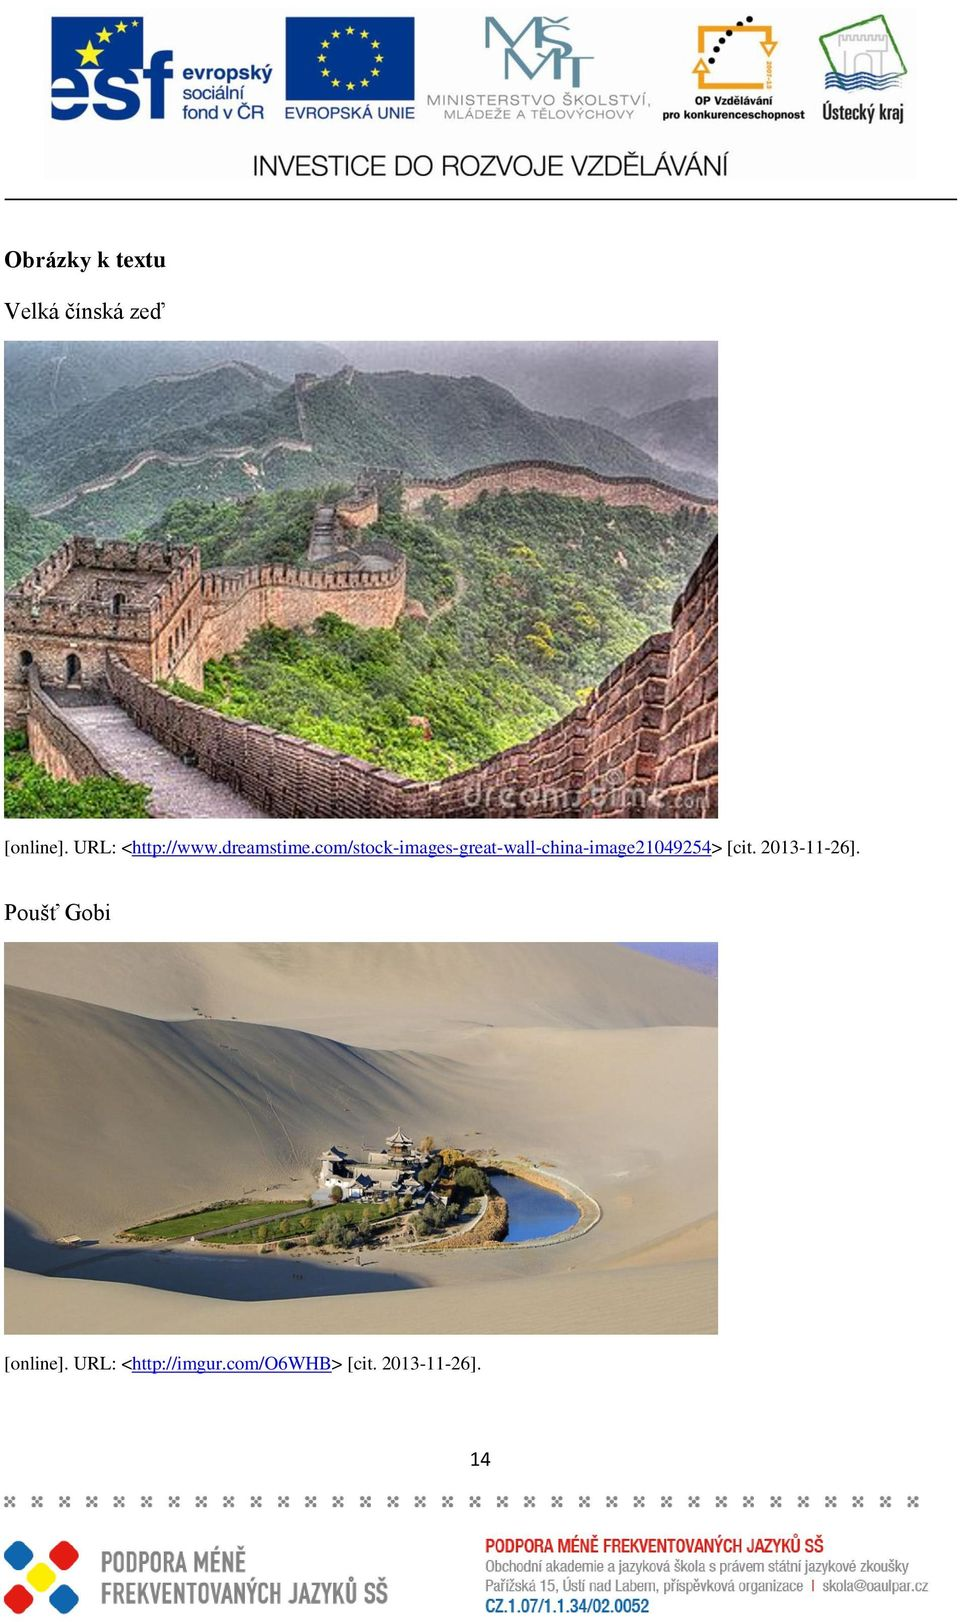 com/stock-images-great-wall-china-image21049254>